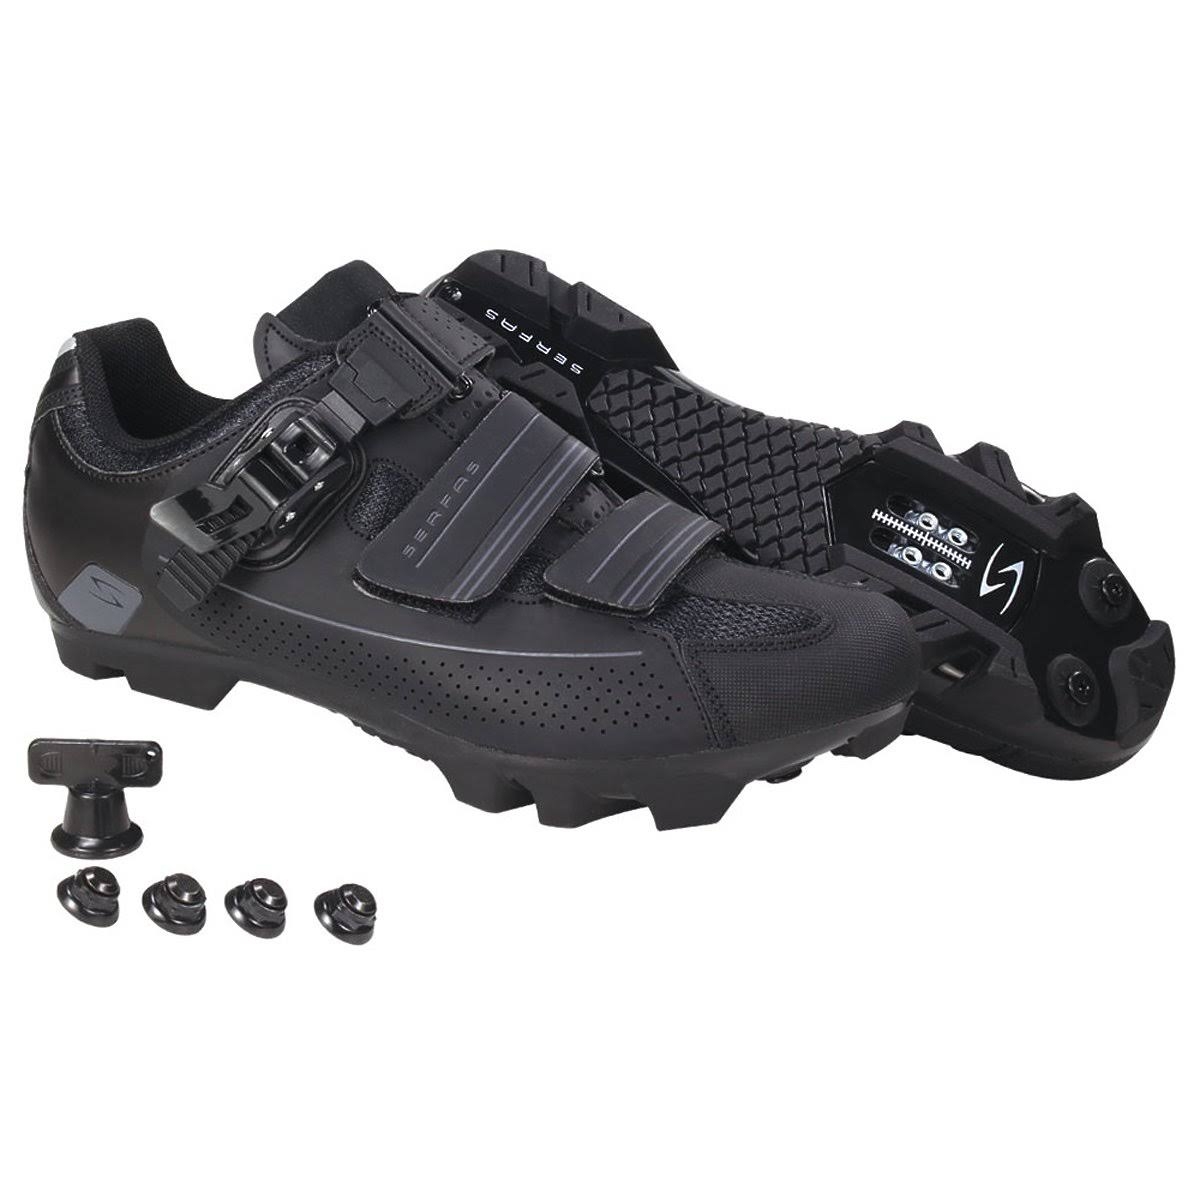 Serfas Men's Switchback Buckle Mountain Bike Shoe - Black, 42 EU